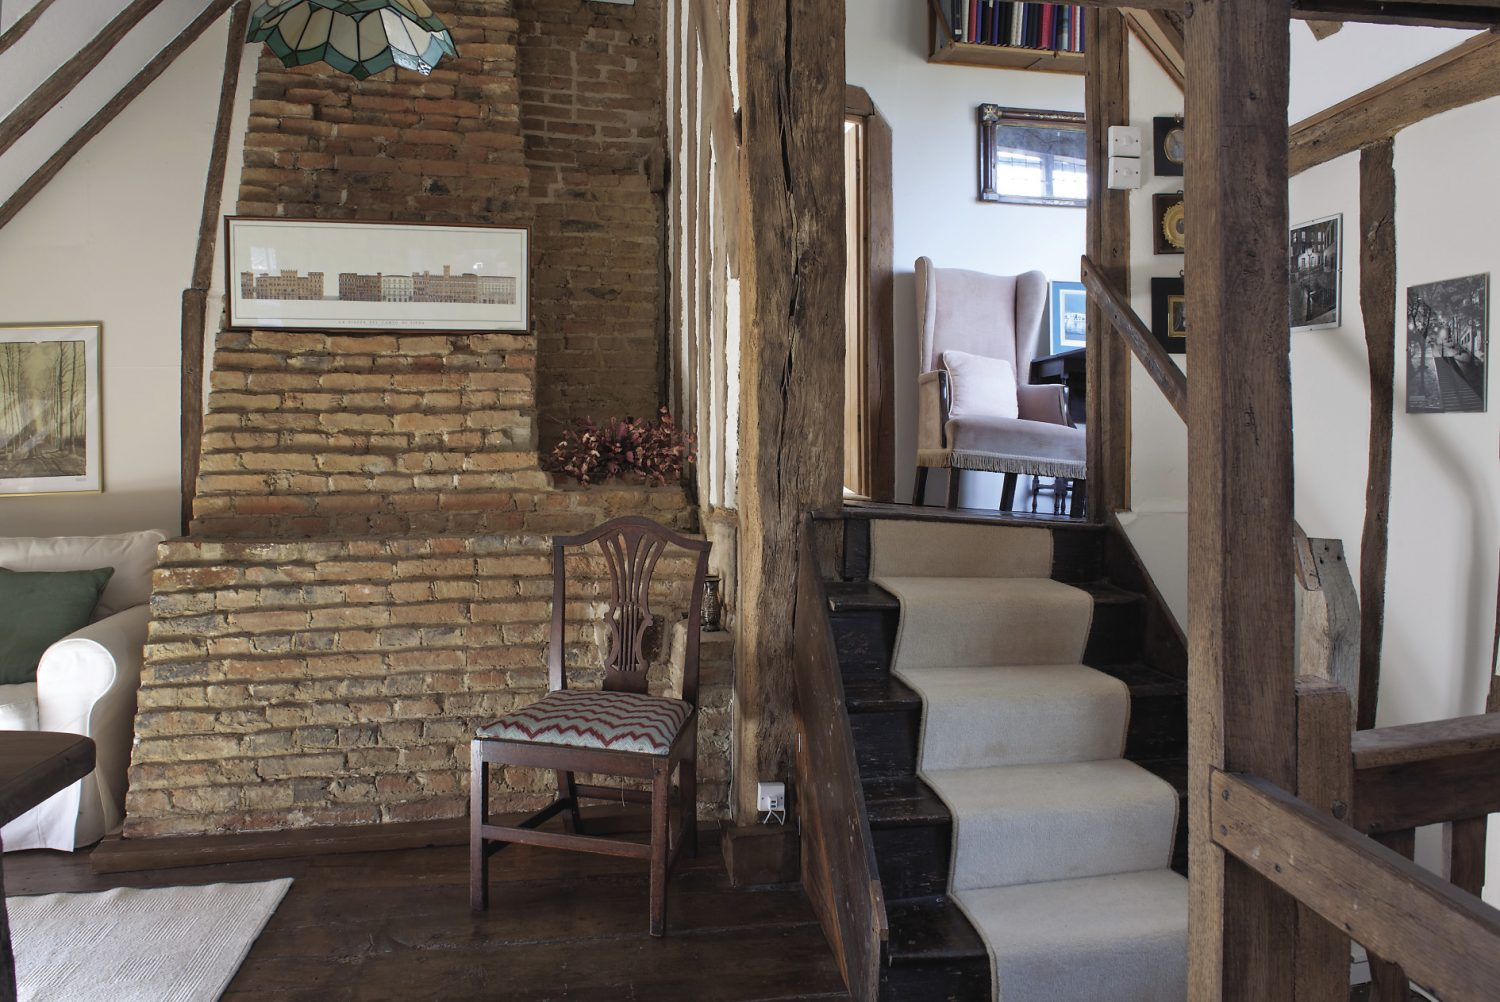 A small flight of stairs leads to the master bedroom and floor above